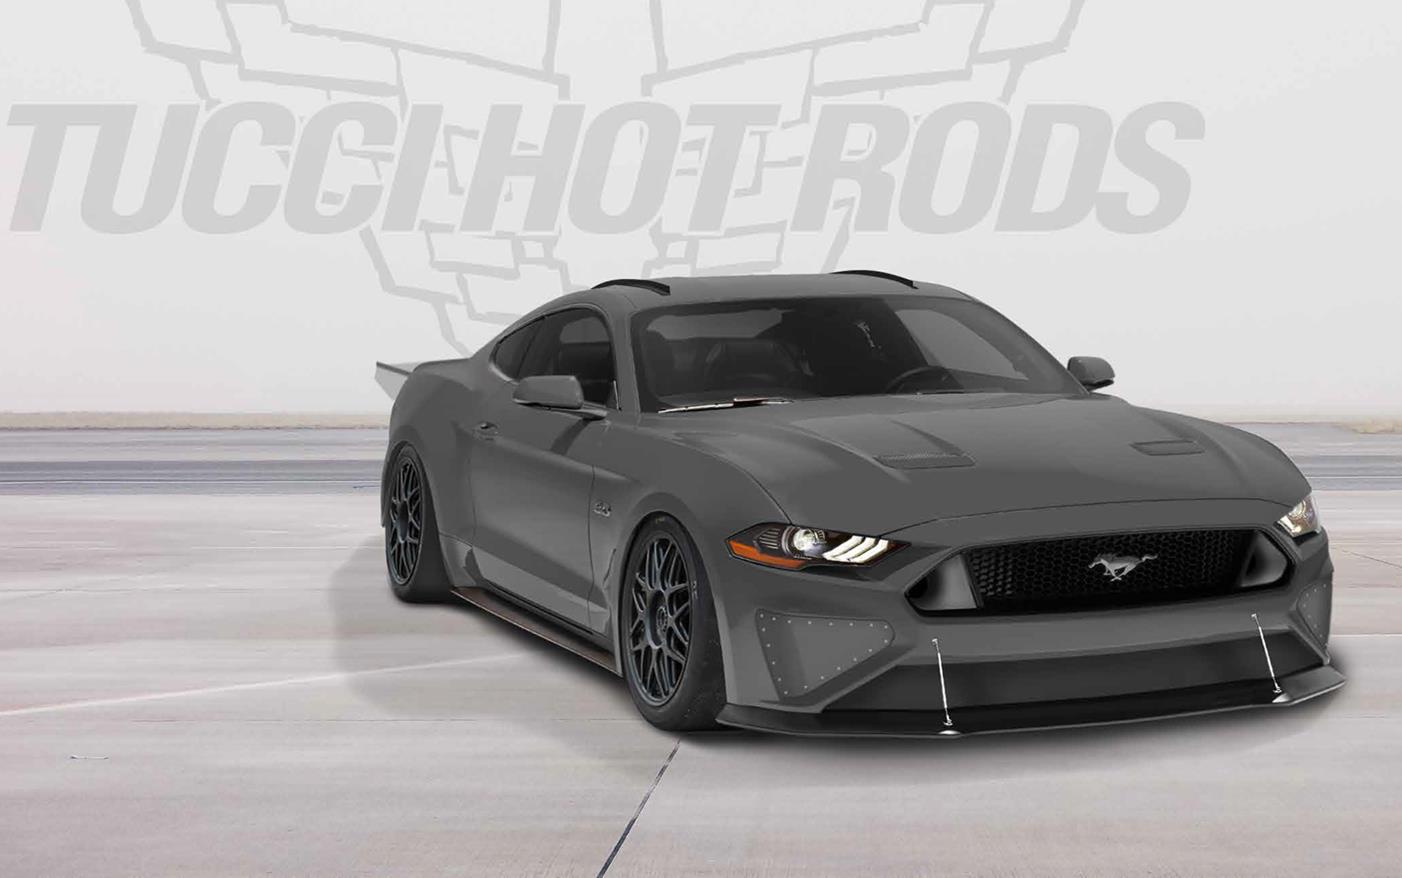 2018 Tucci Hot Rods Mustang